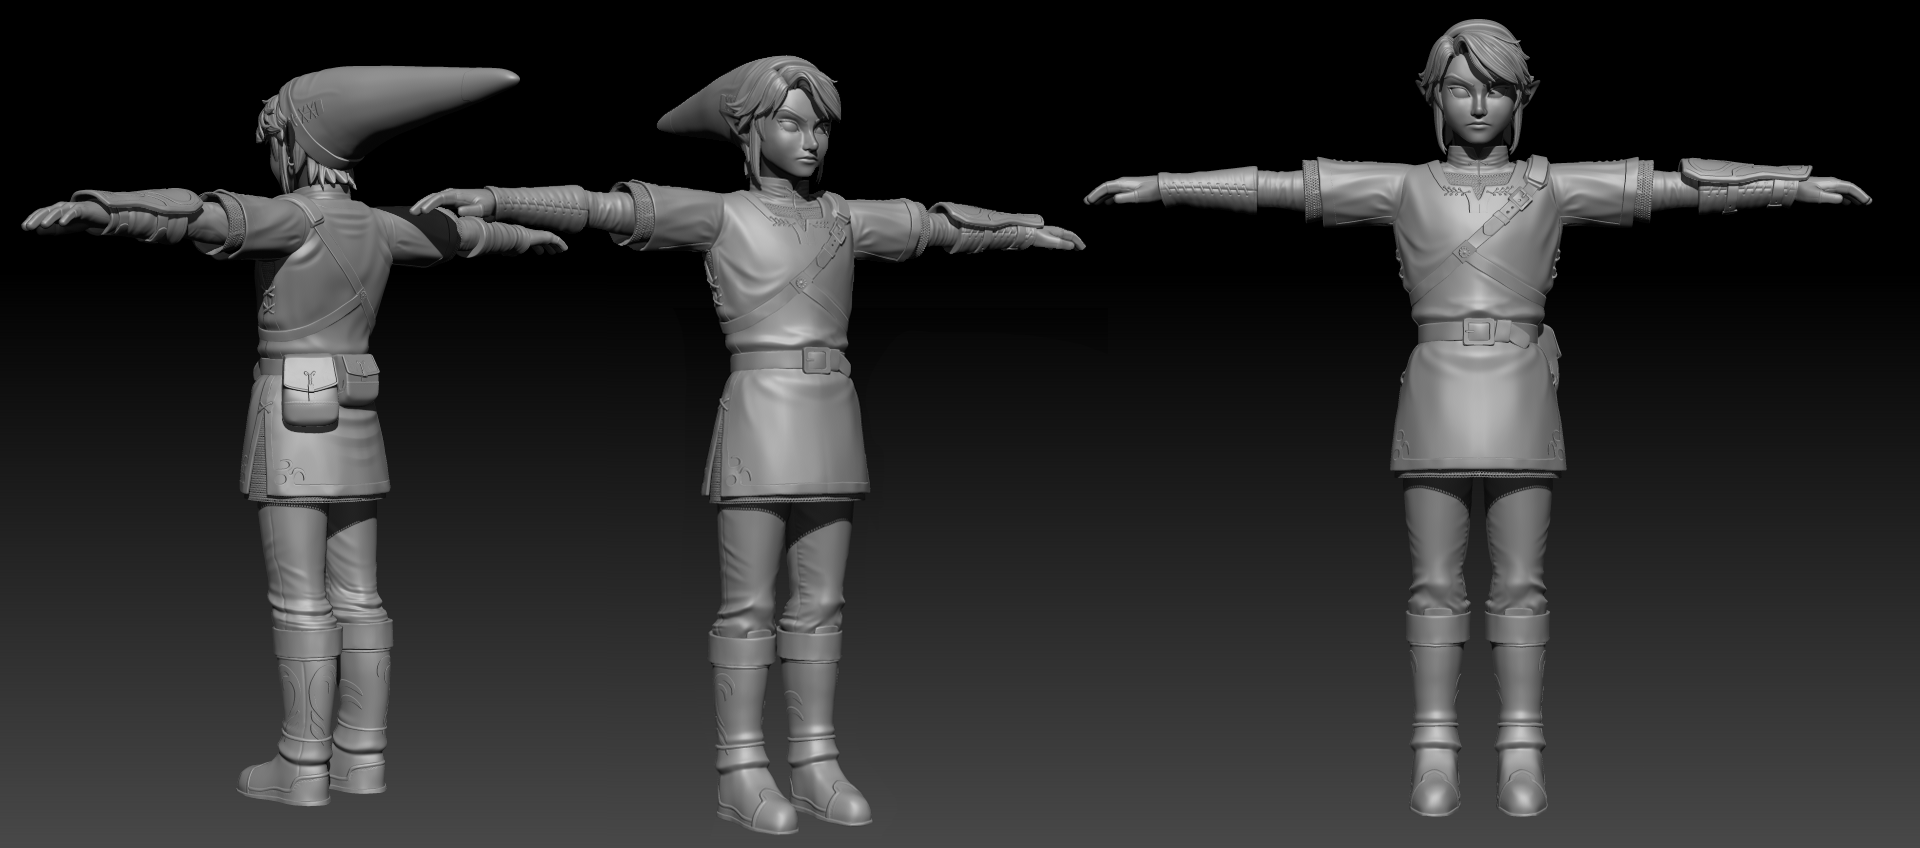 Link_HighPoly_Compiled.png